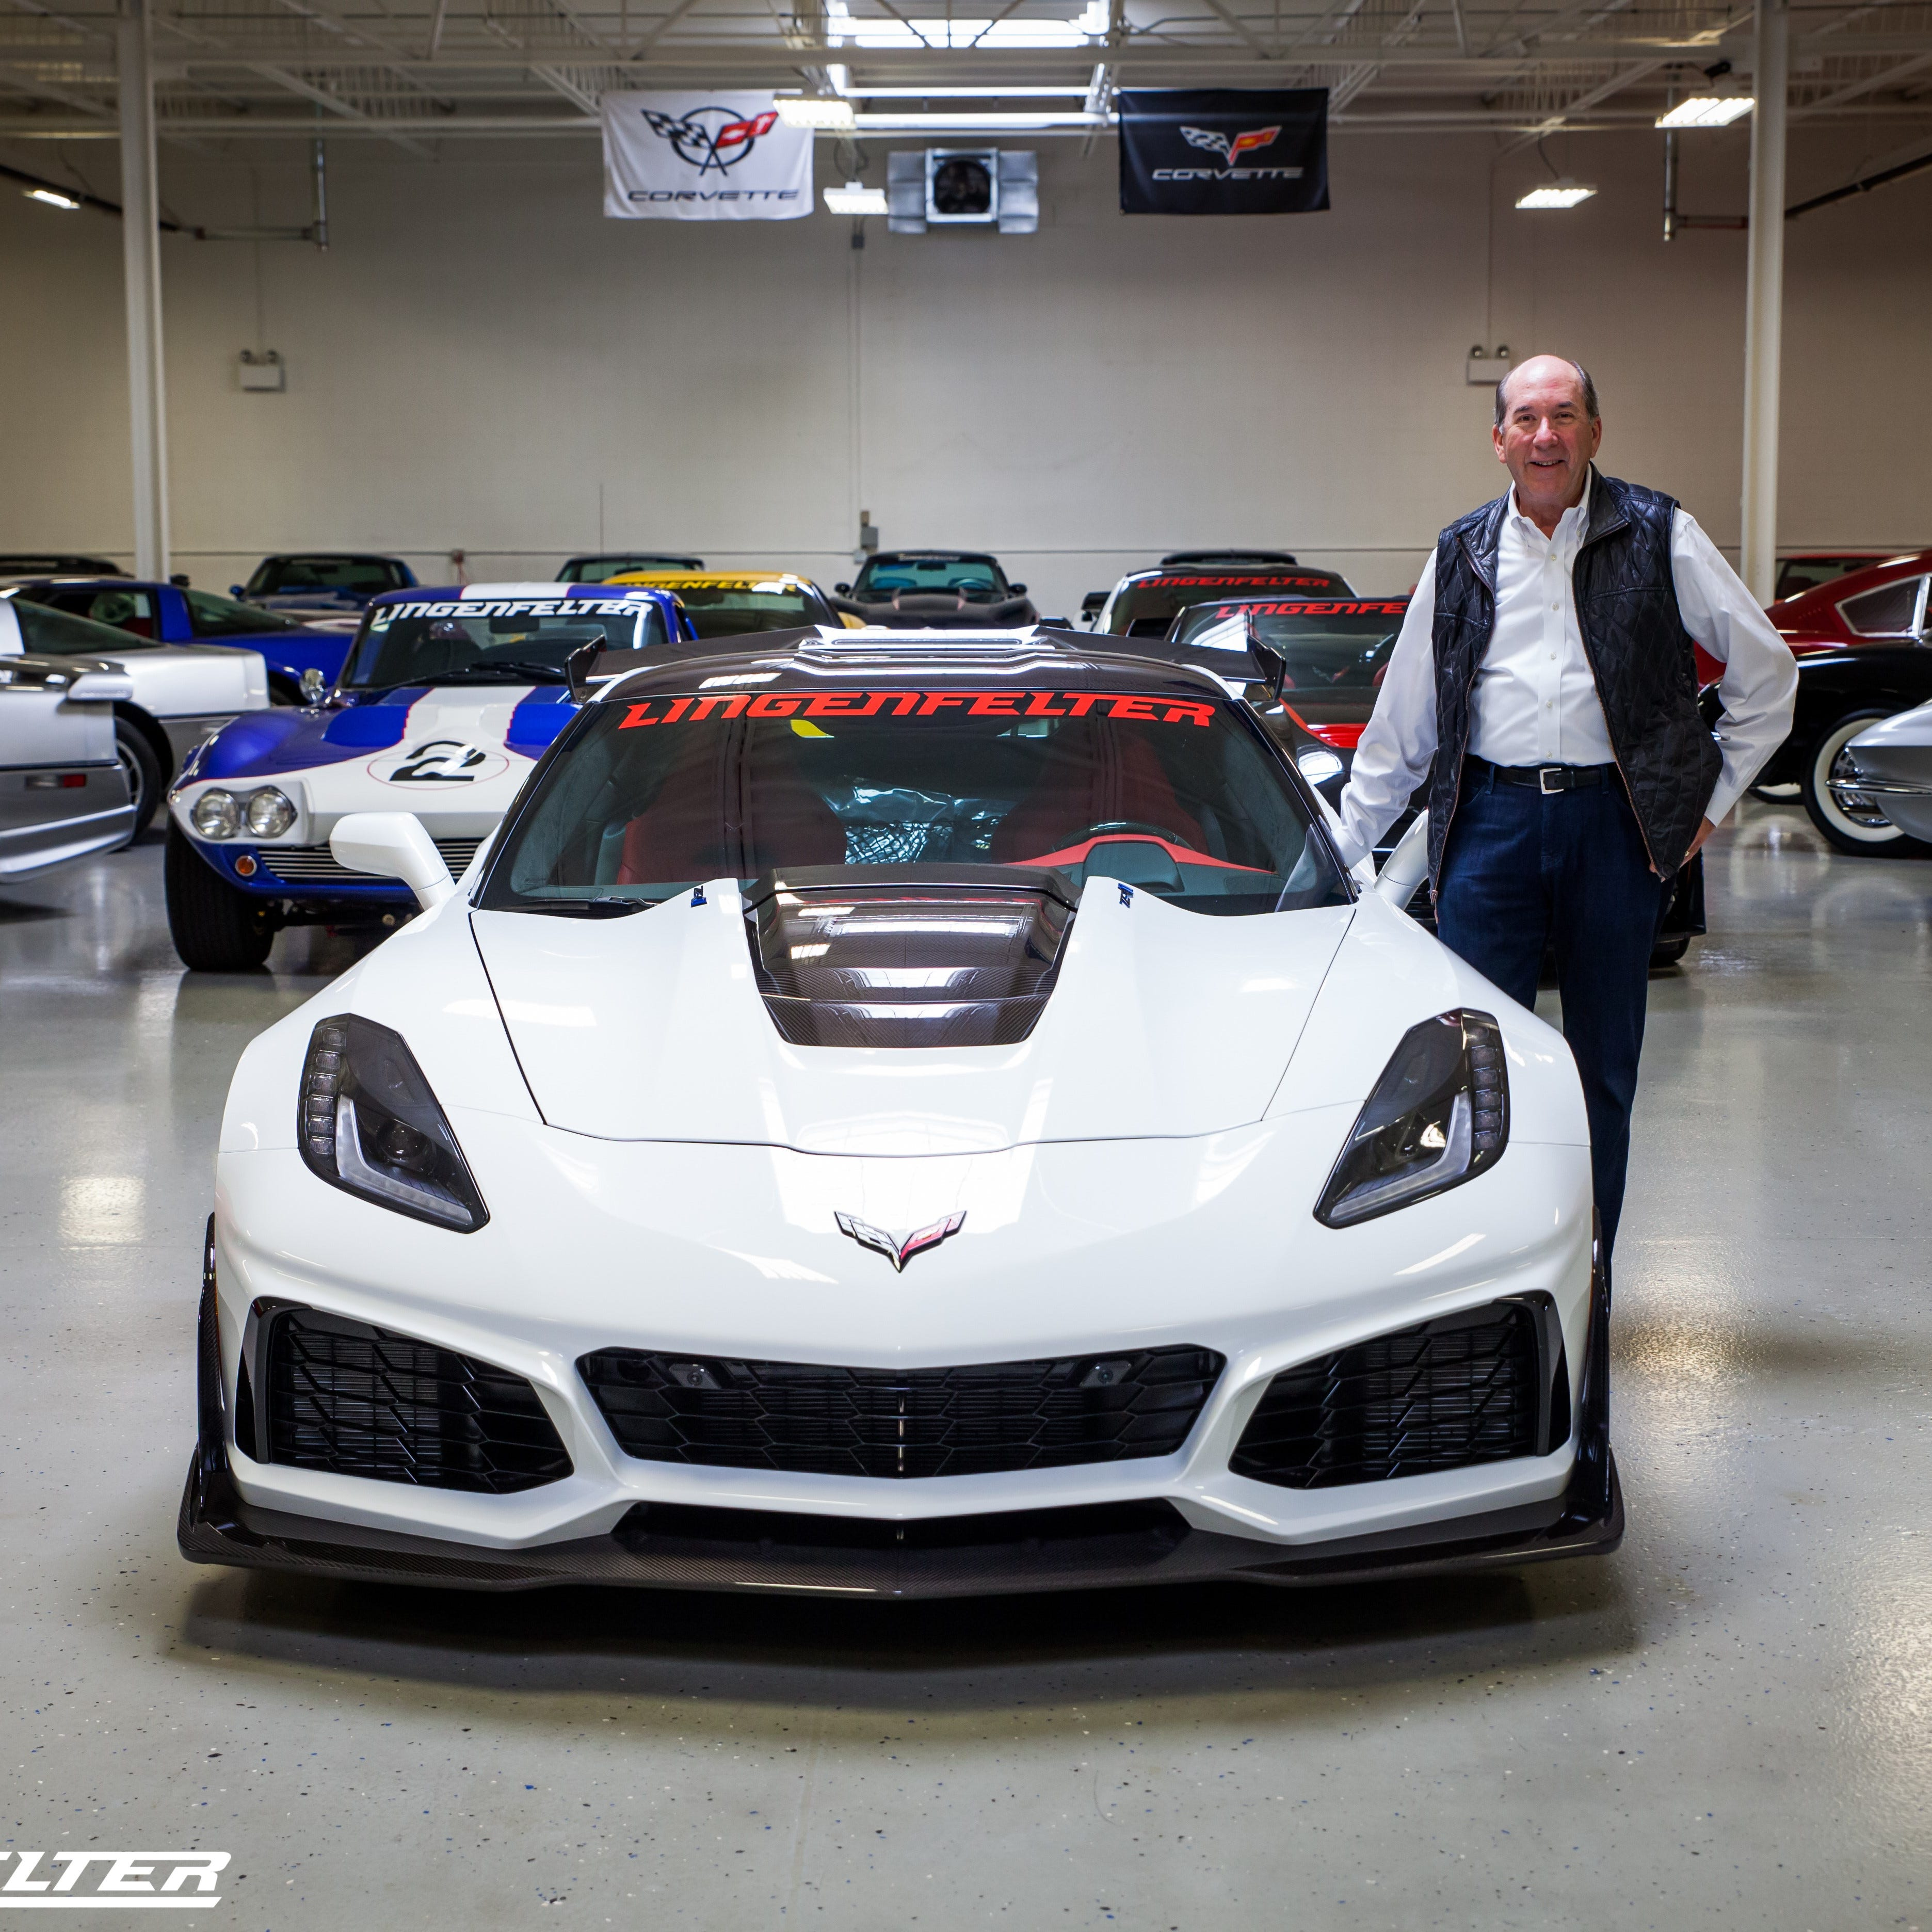 Lingenfelter Collection of more than 200 exotic cars  open to the public Saturday for charity event